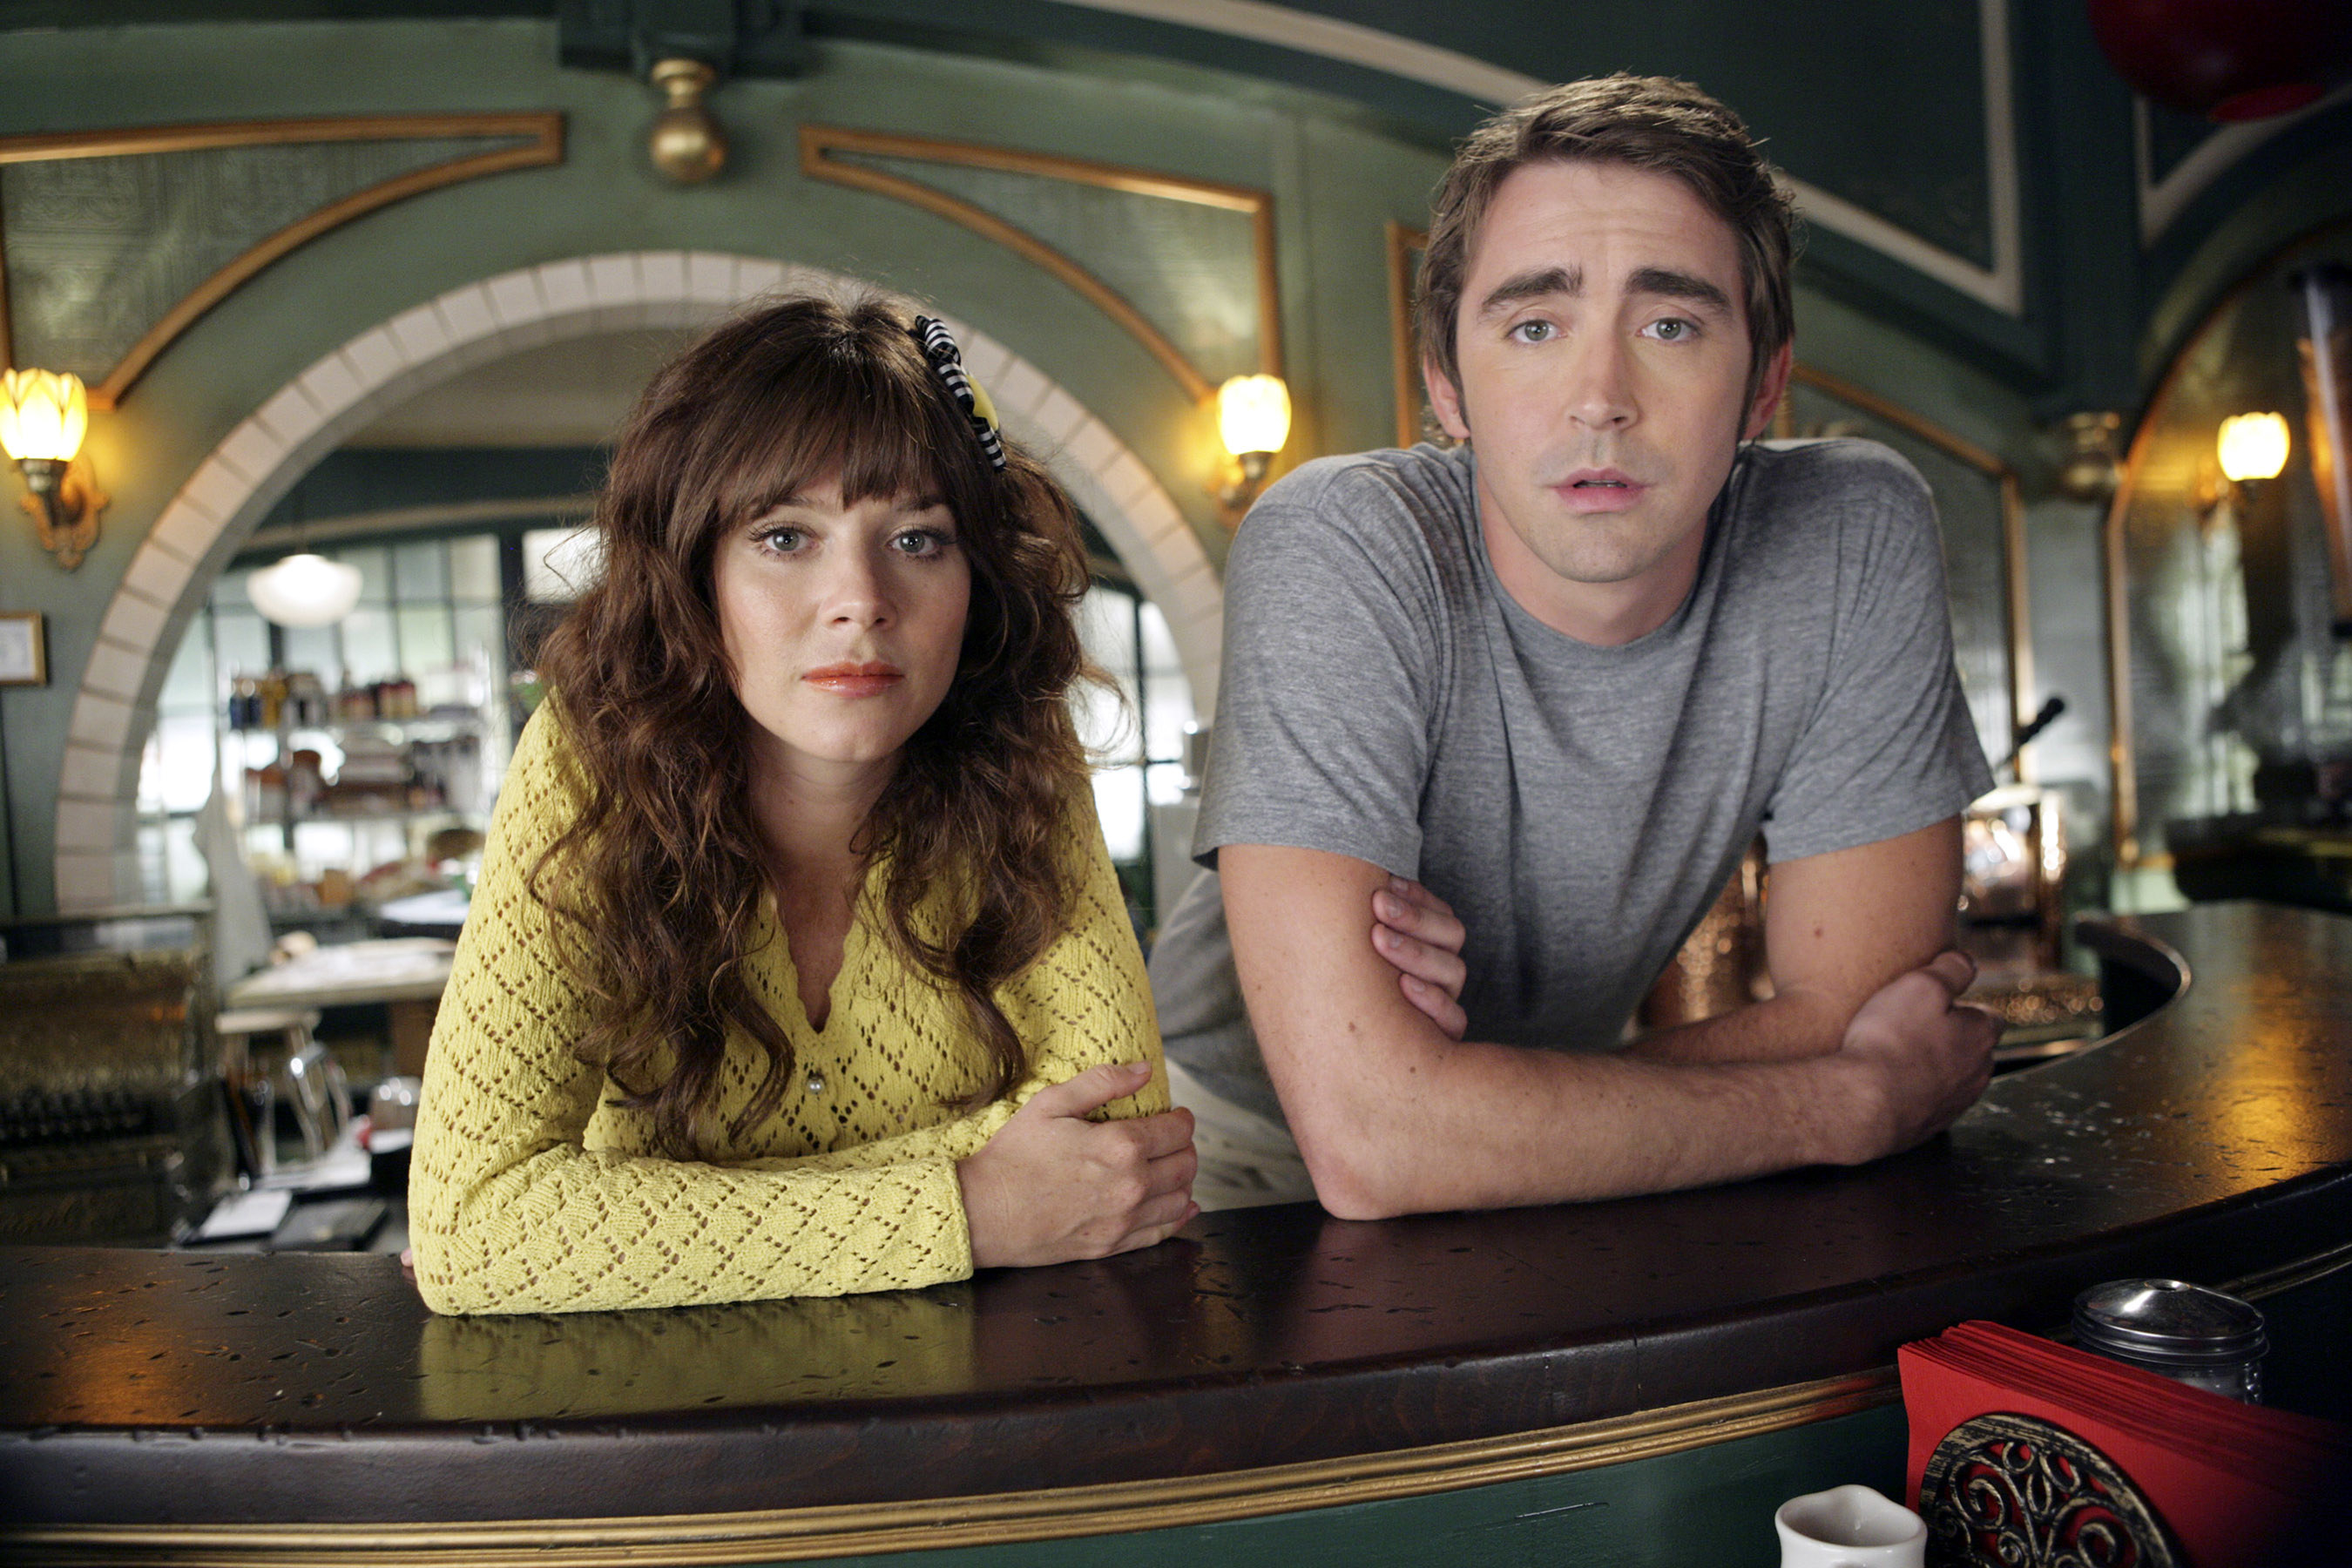 Anna Friel and Lee Pace lean on the diner counter